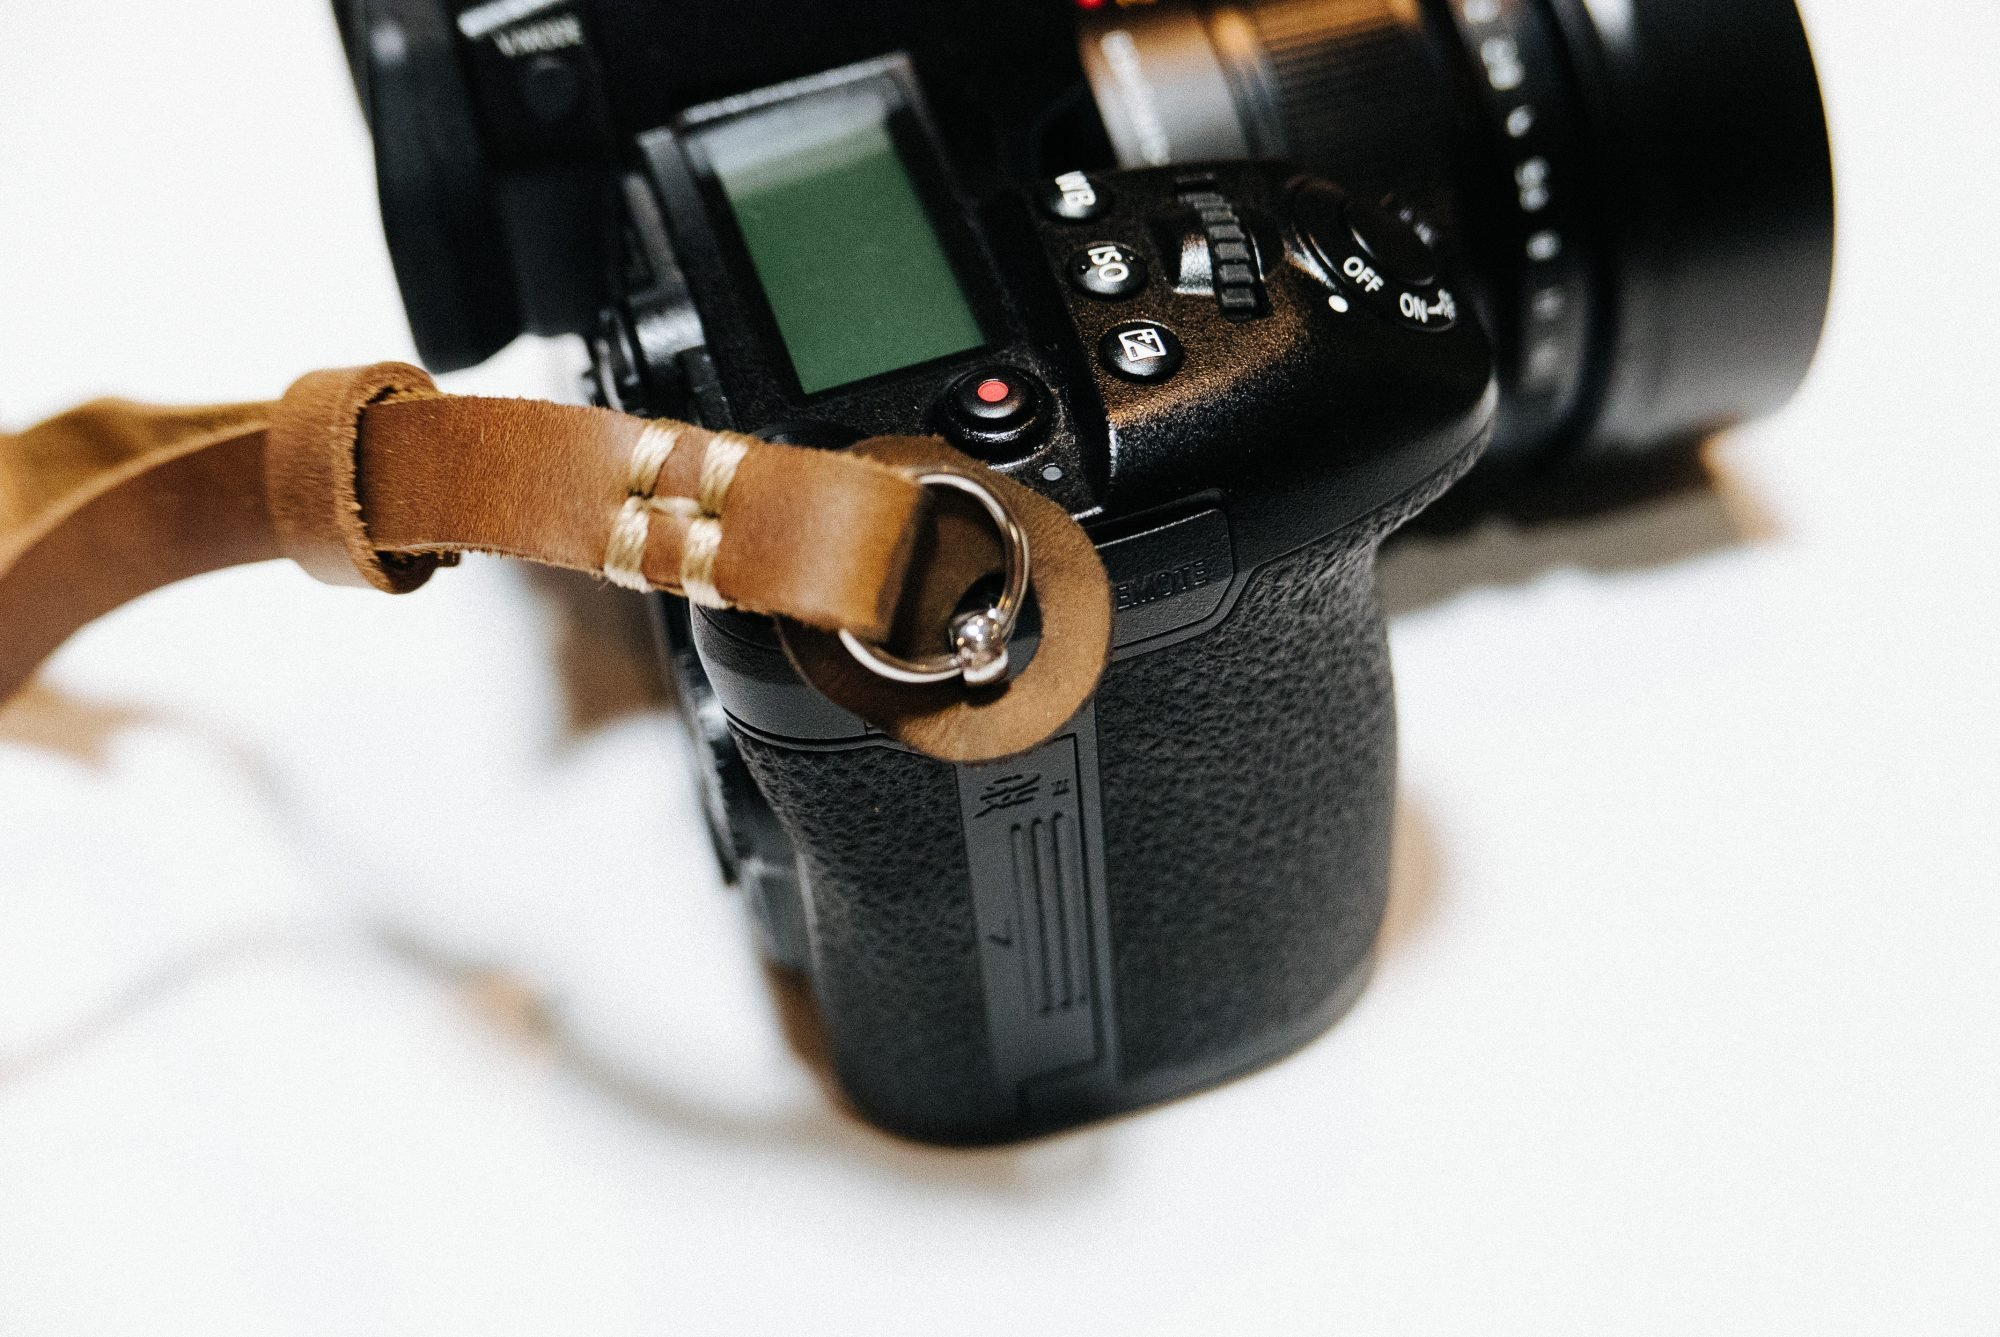 Henri by Eric Kim Handmade Premium Leather Camera Wrist Strap by Eric Kim Photography (Image #3)